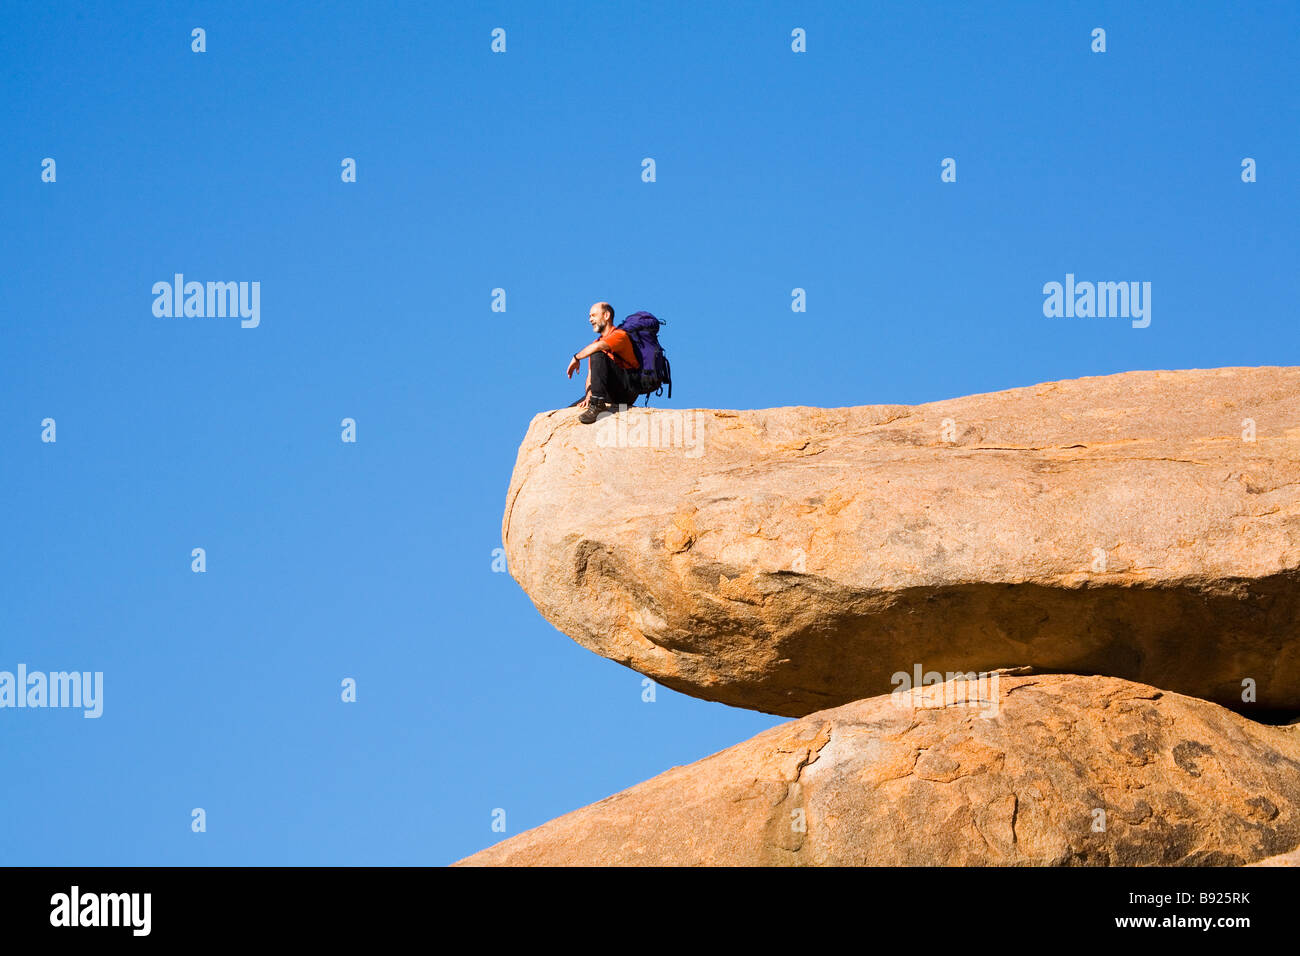 Man sitting on rock staring out at the view bellow, low angle view. Richtersveld National Park, Northern Cape, South - Stock Image